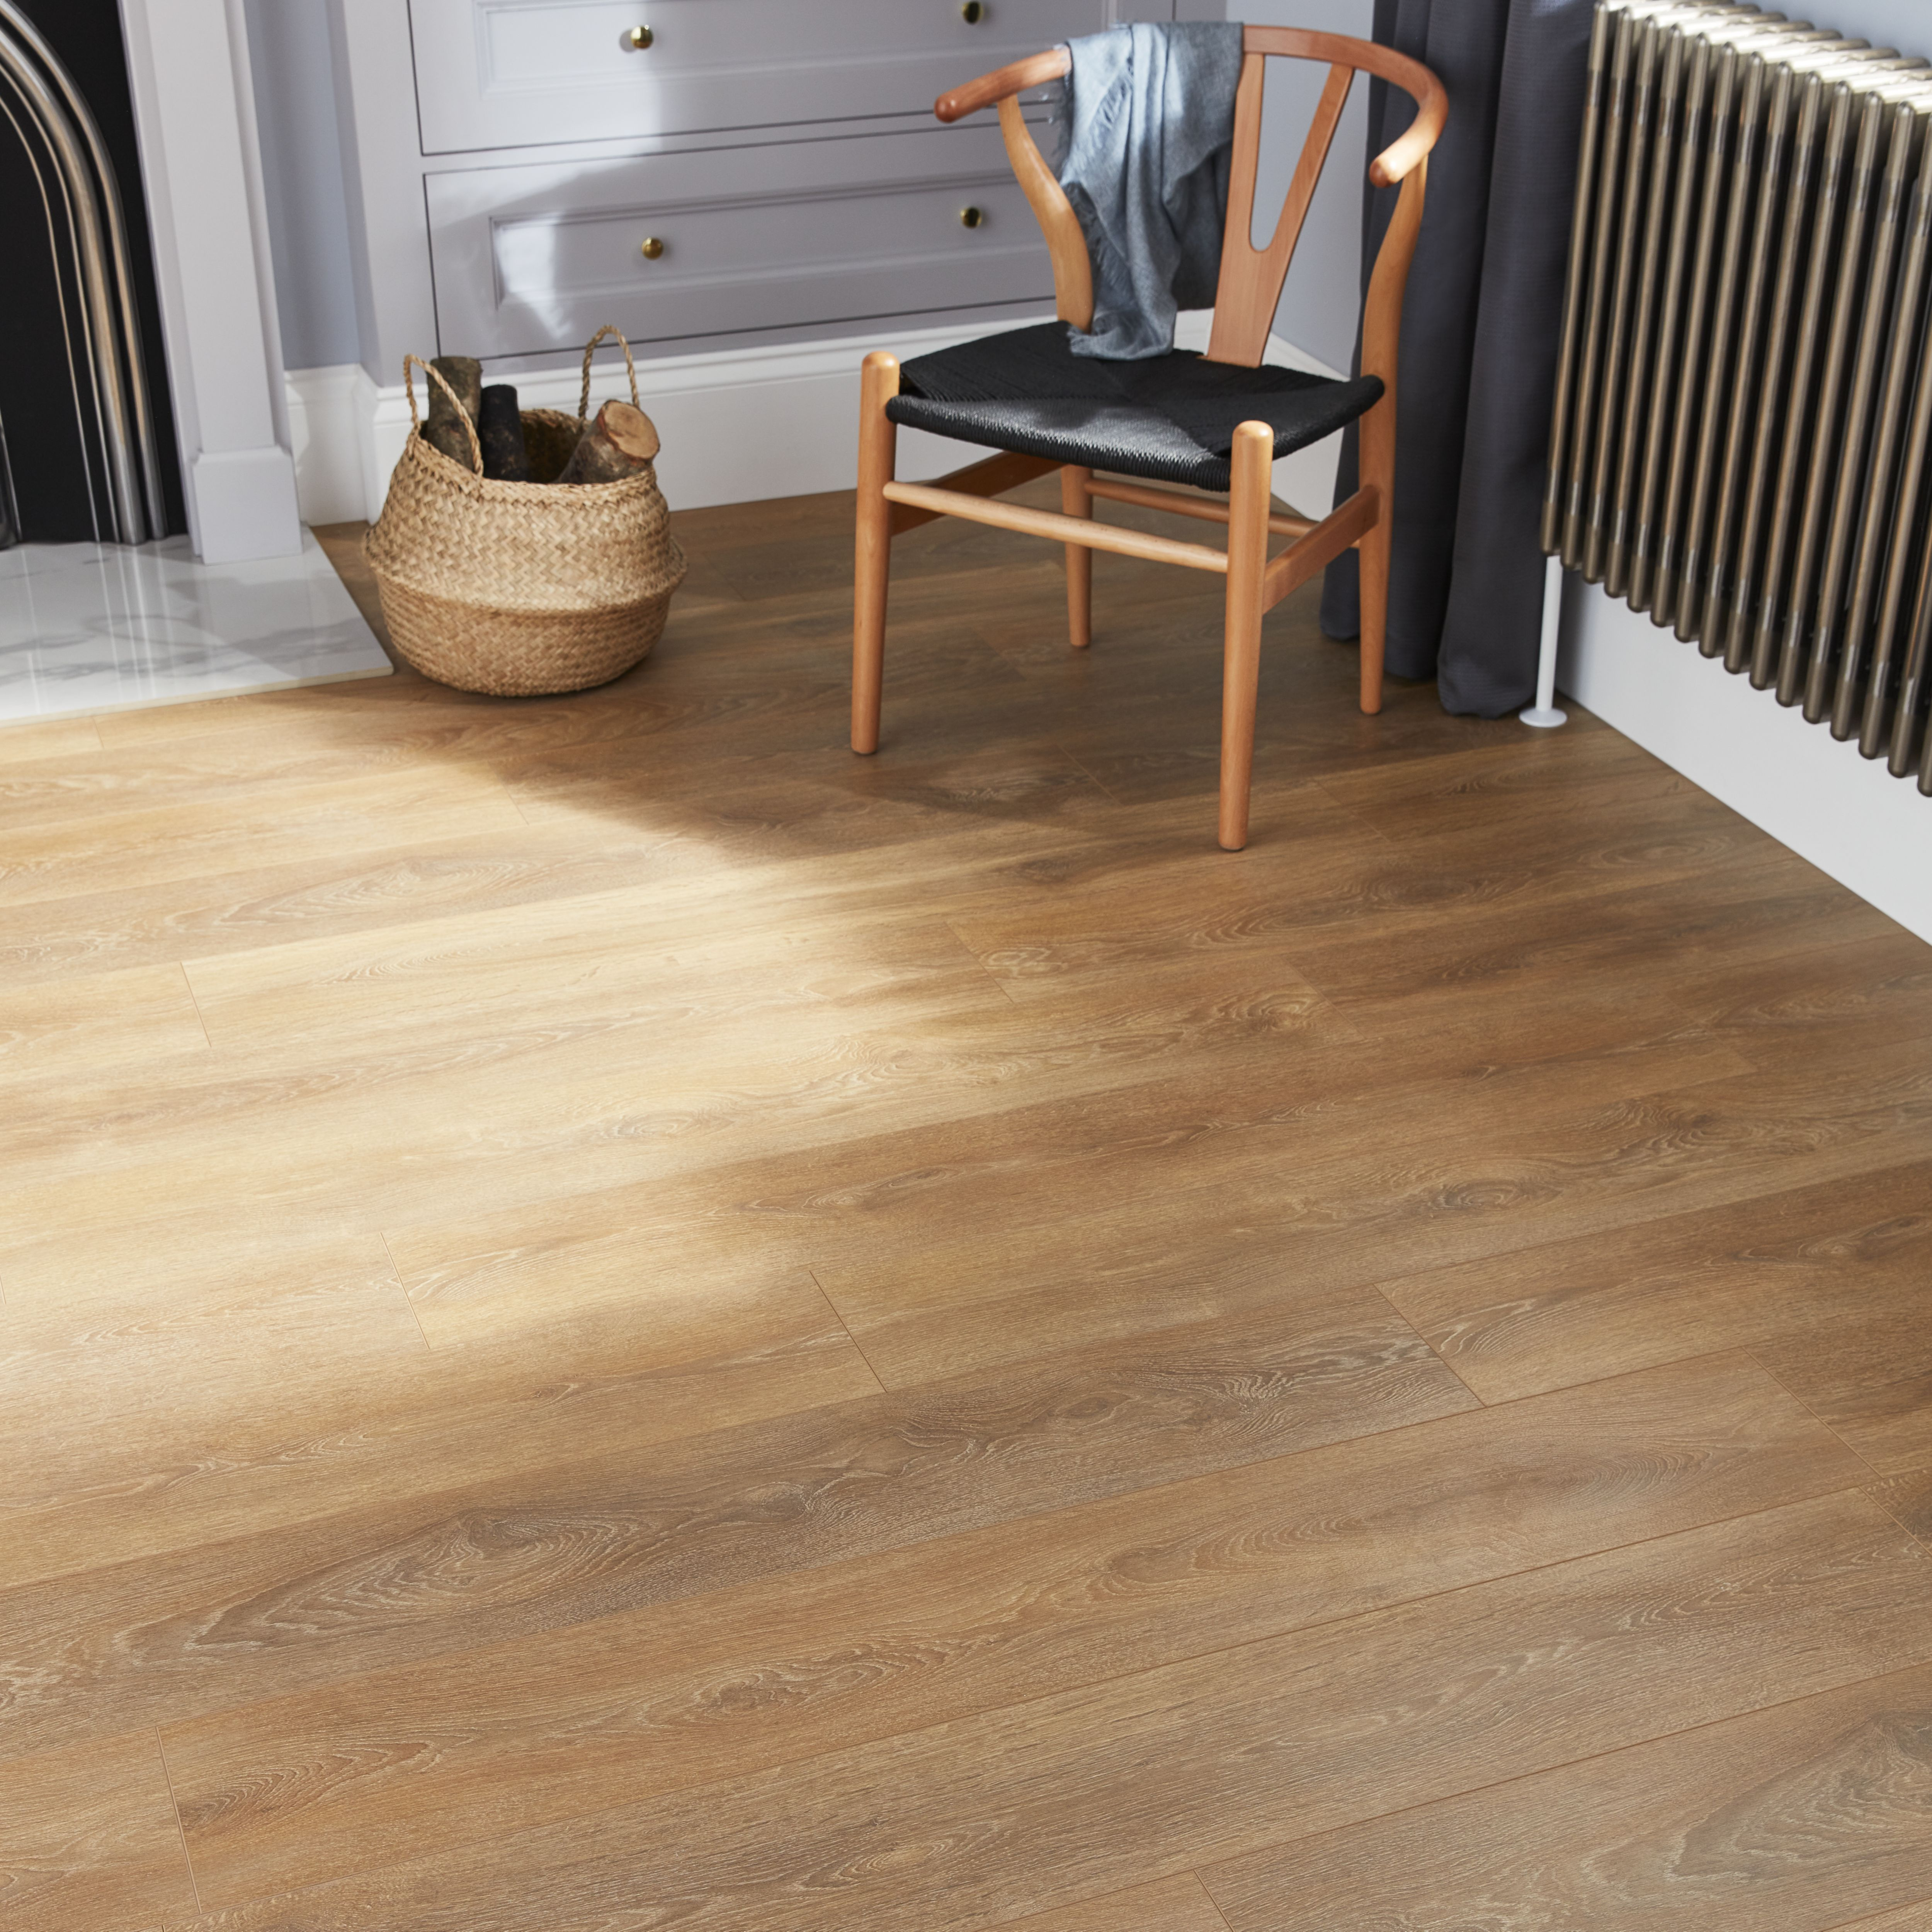 Goodhome Mossley Natural Oak Effect Laminate Flooring 1